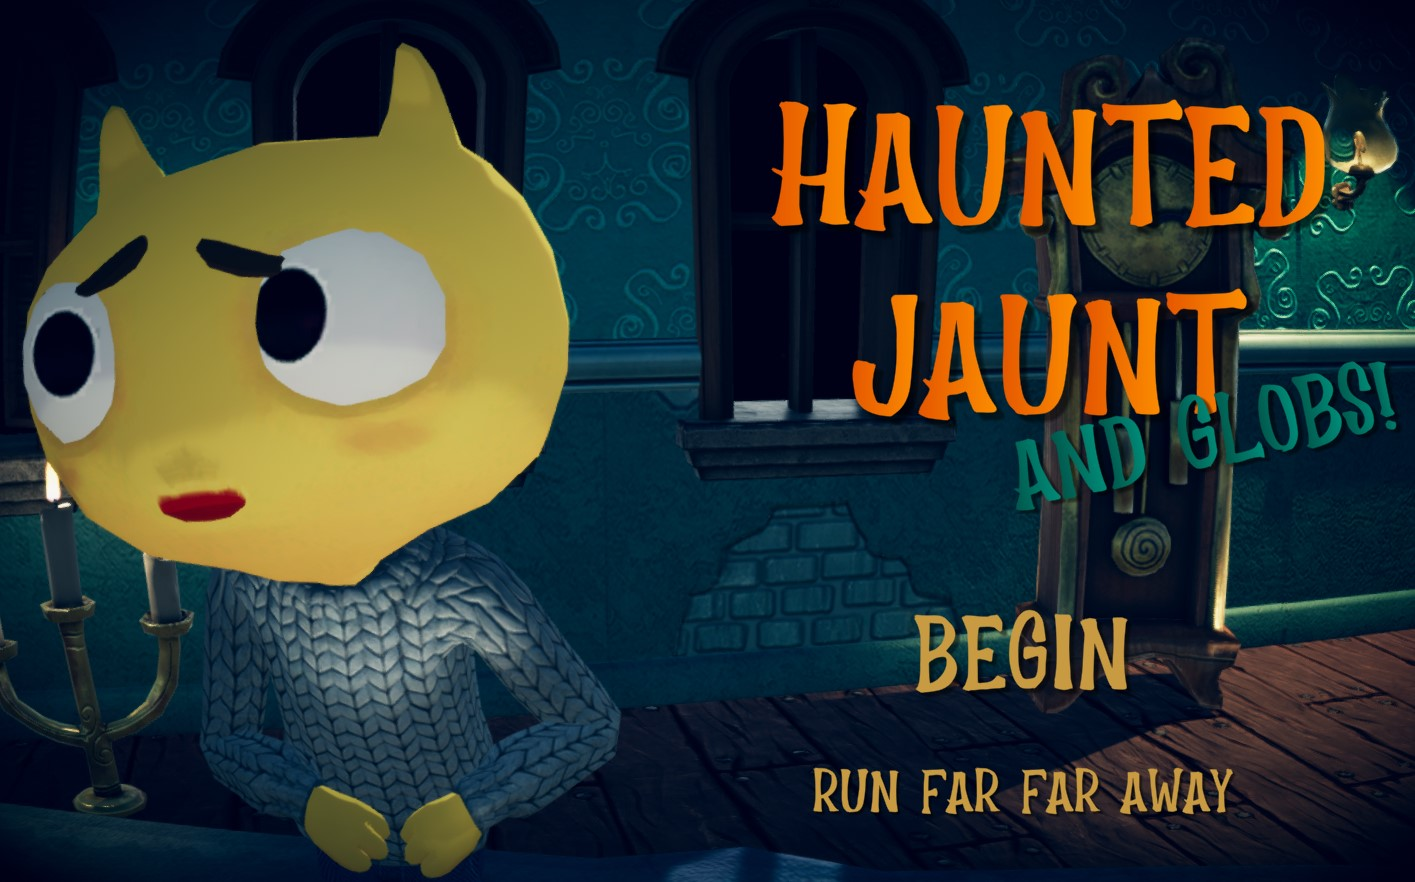 Haunted Jaunt And Globs!